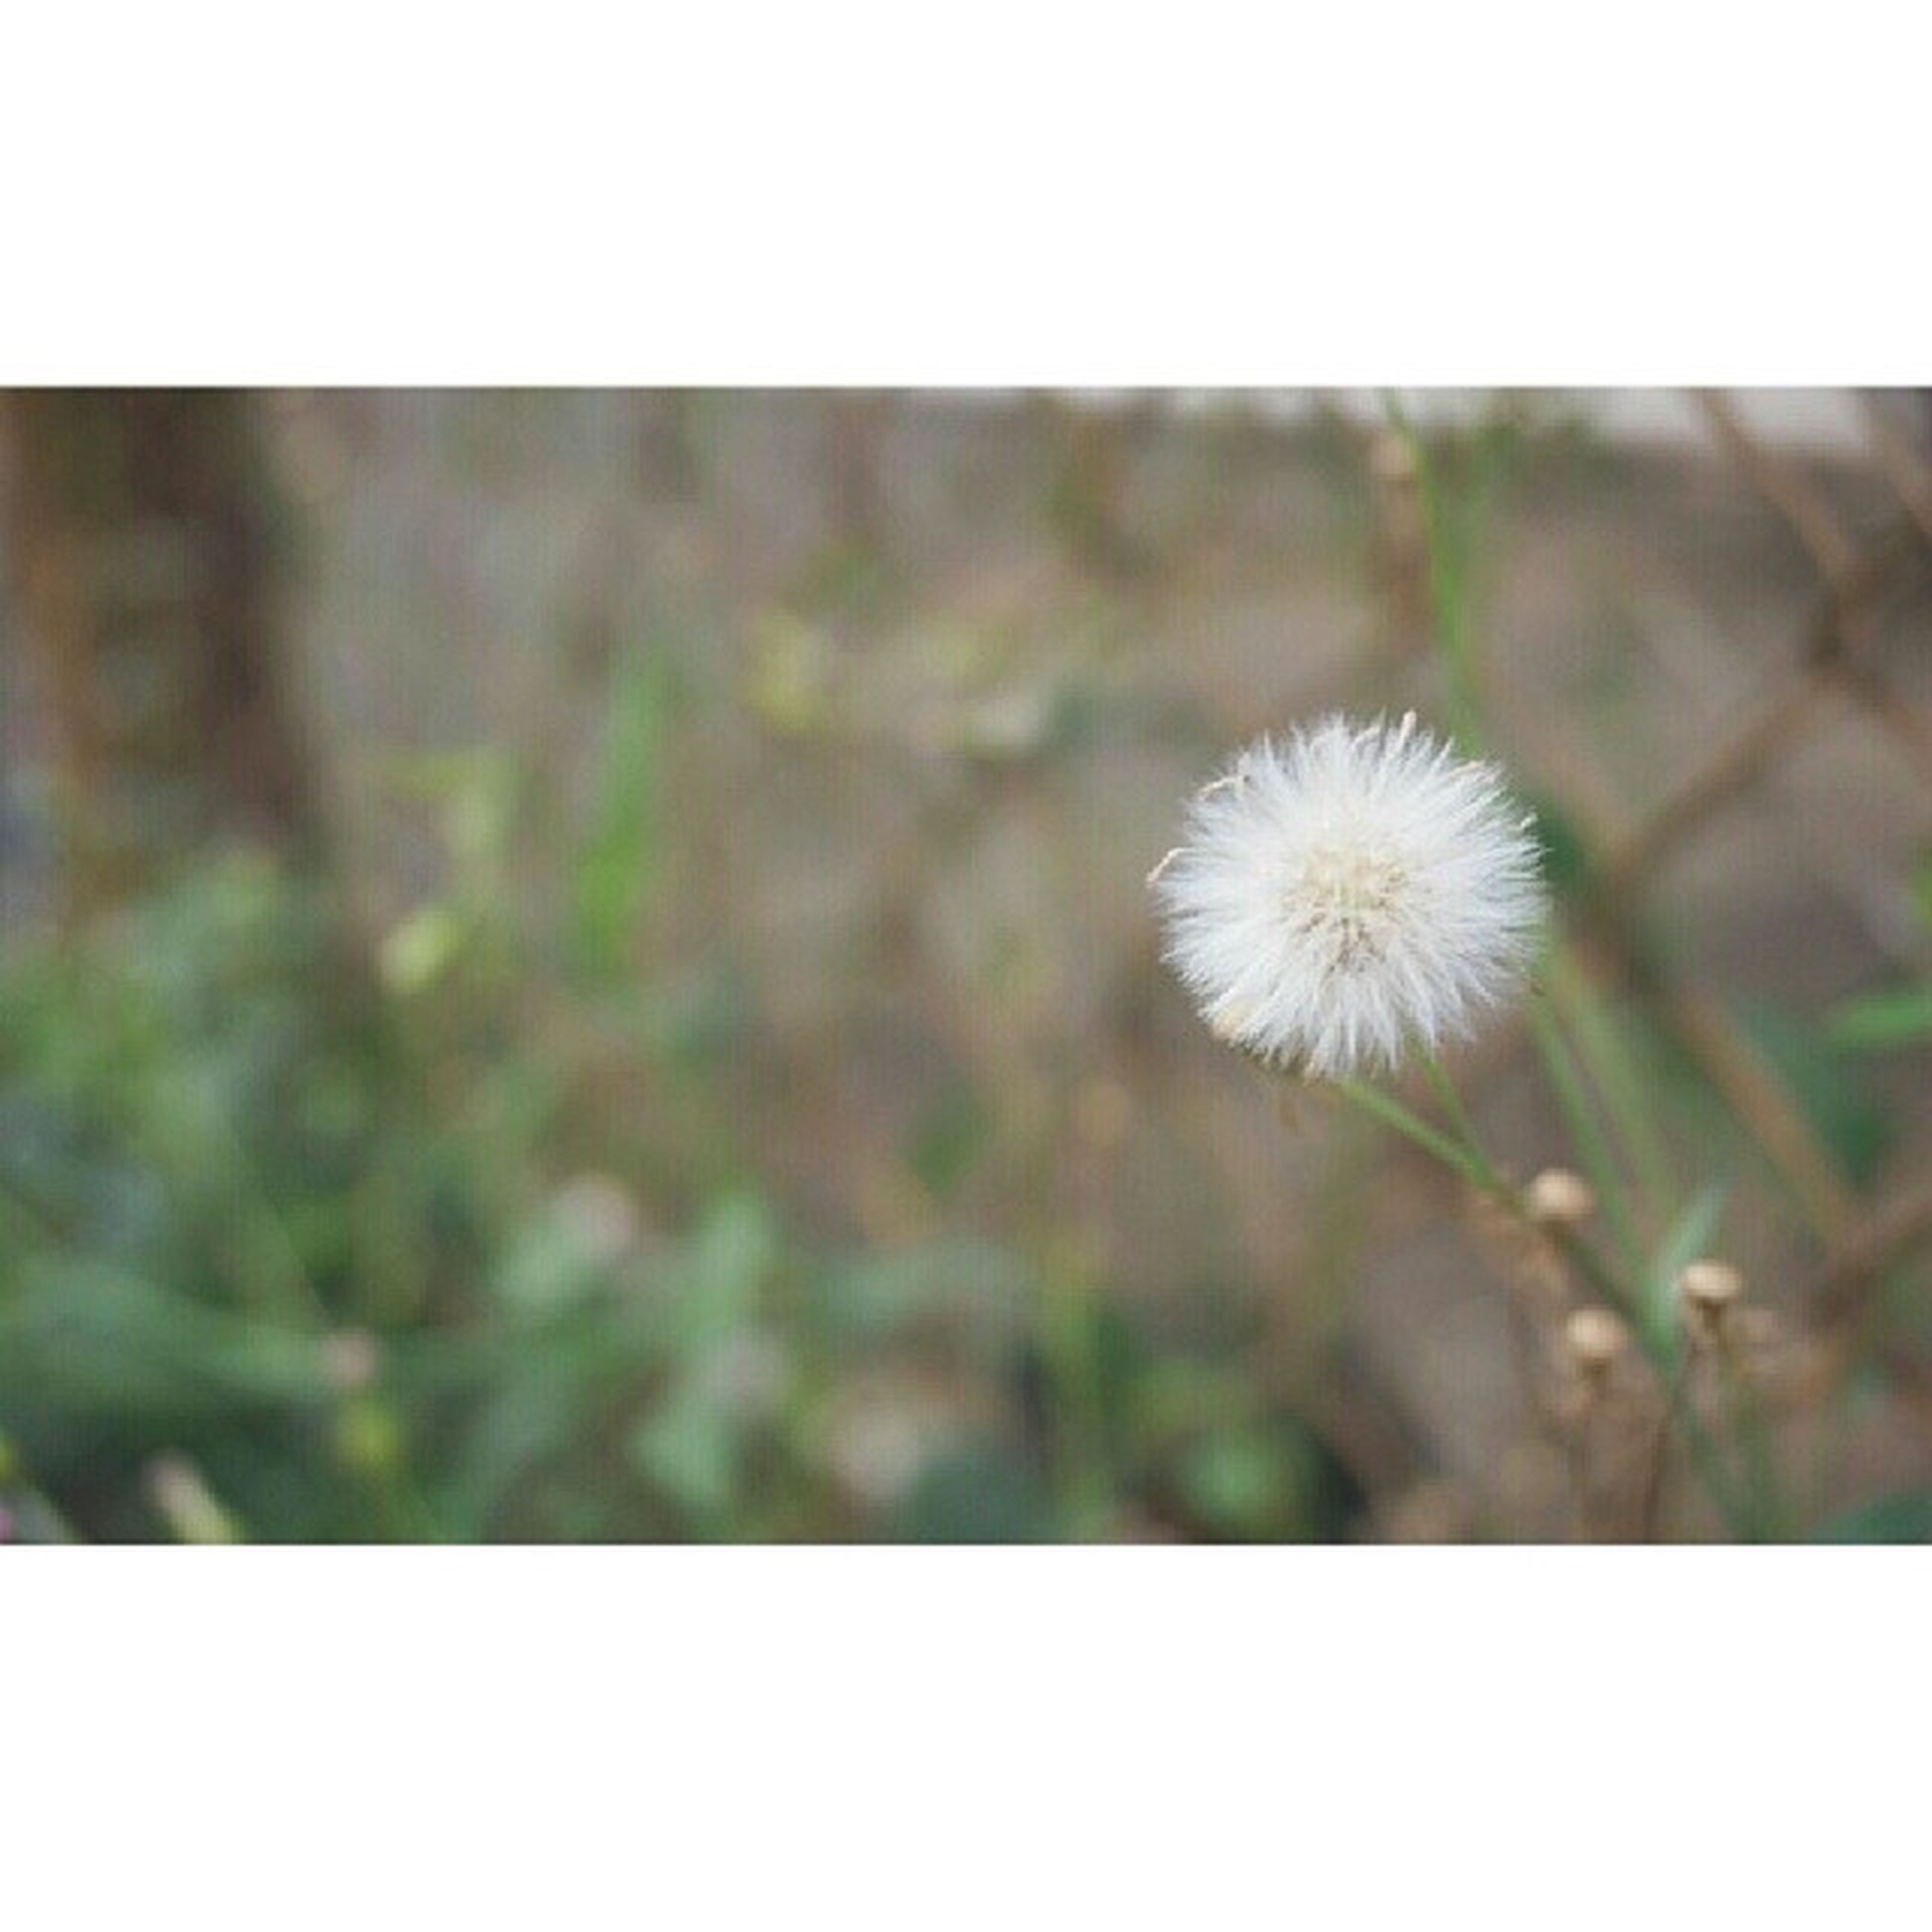 flower, fragility, growth, transfer print, freshness, flower head, close-up, beauty in nature, focus on foreground, nature, dandelion, plant, auto post production filter, stem, wildflower, petal, blooming, single flower, selective focus, white color